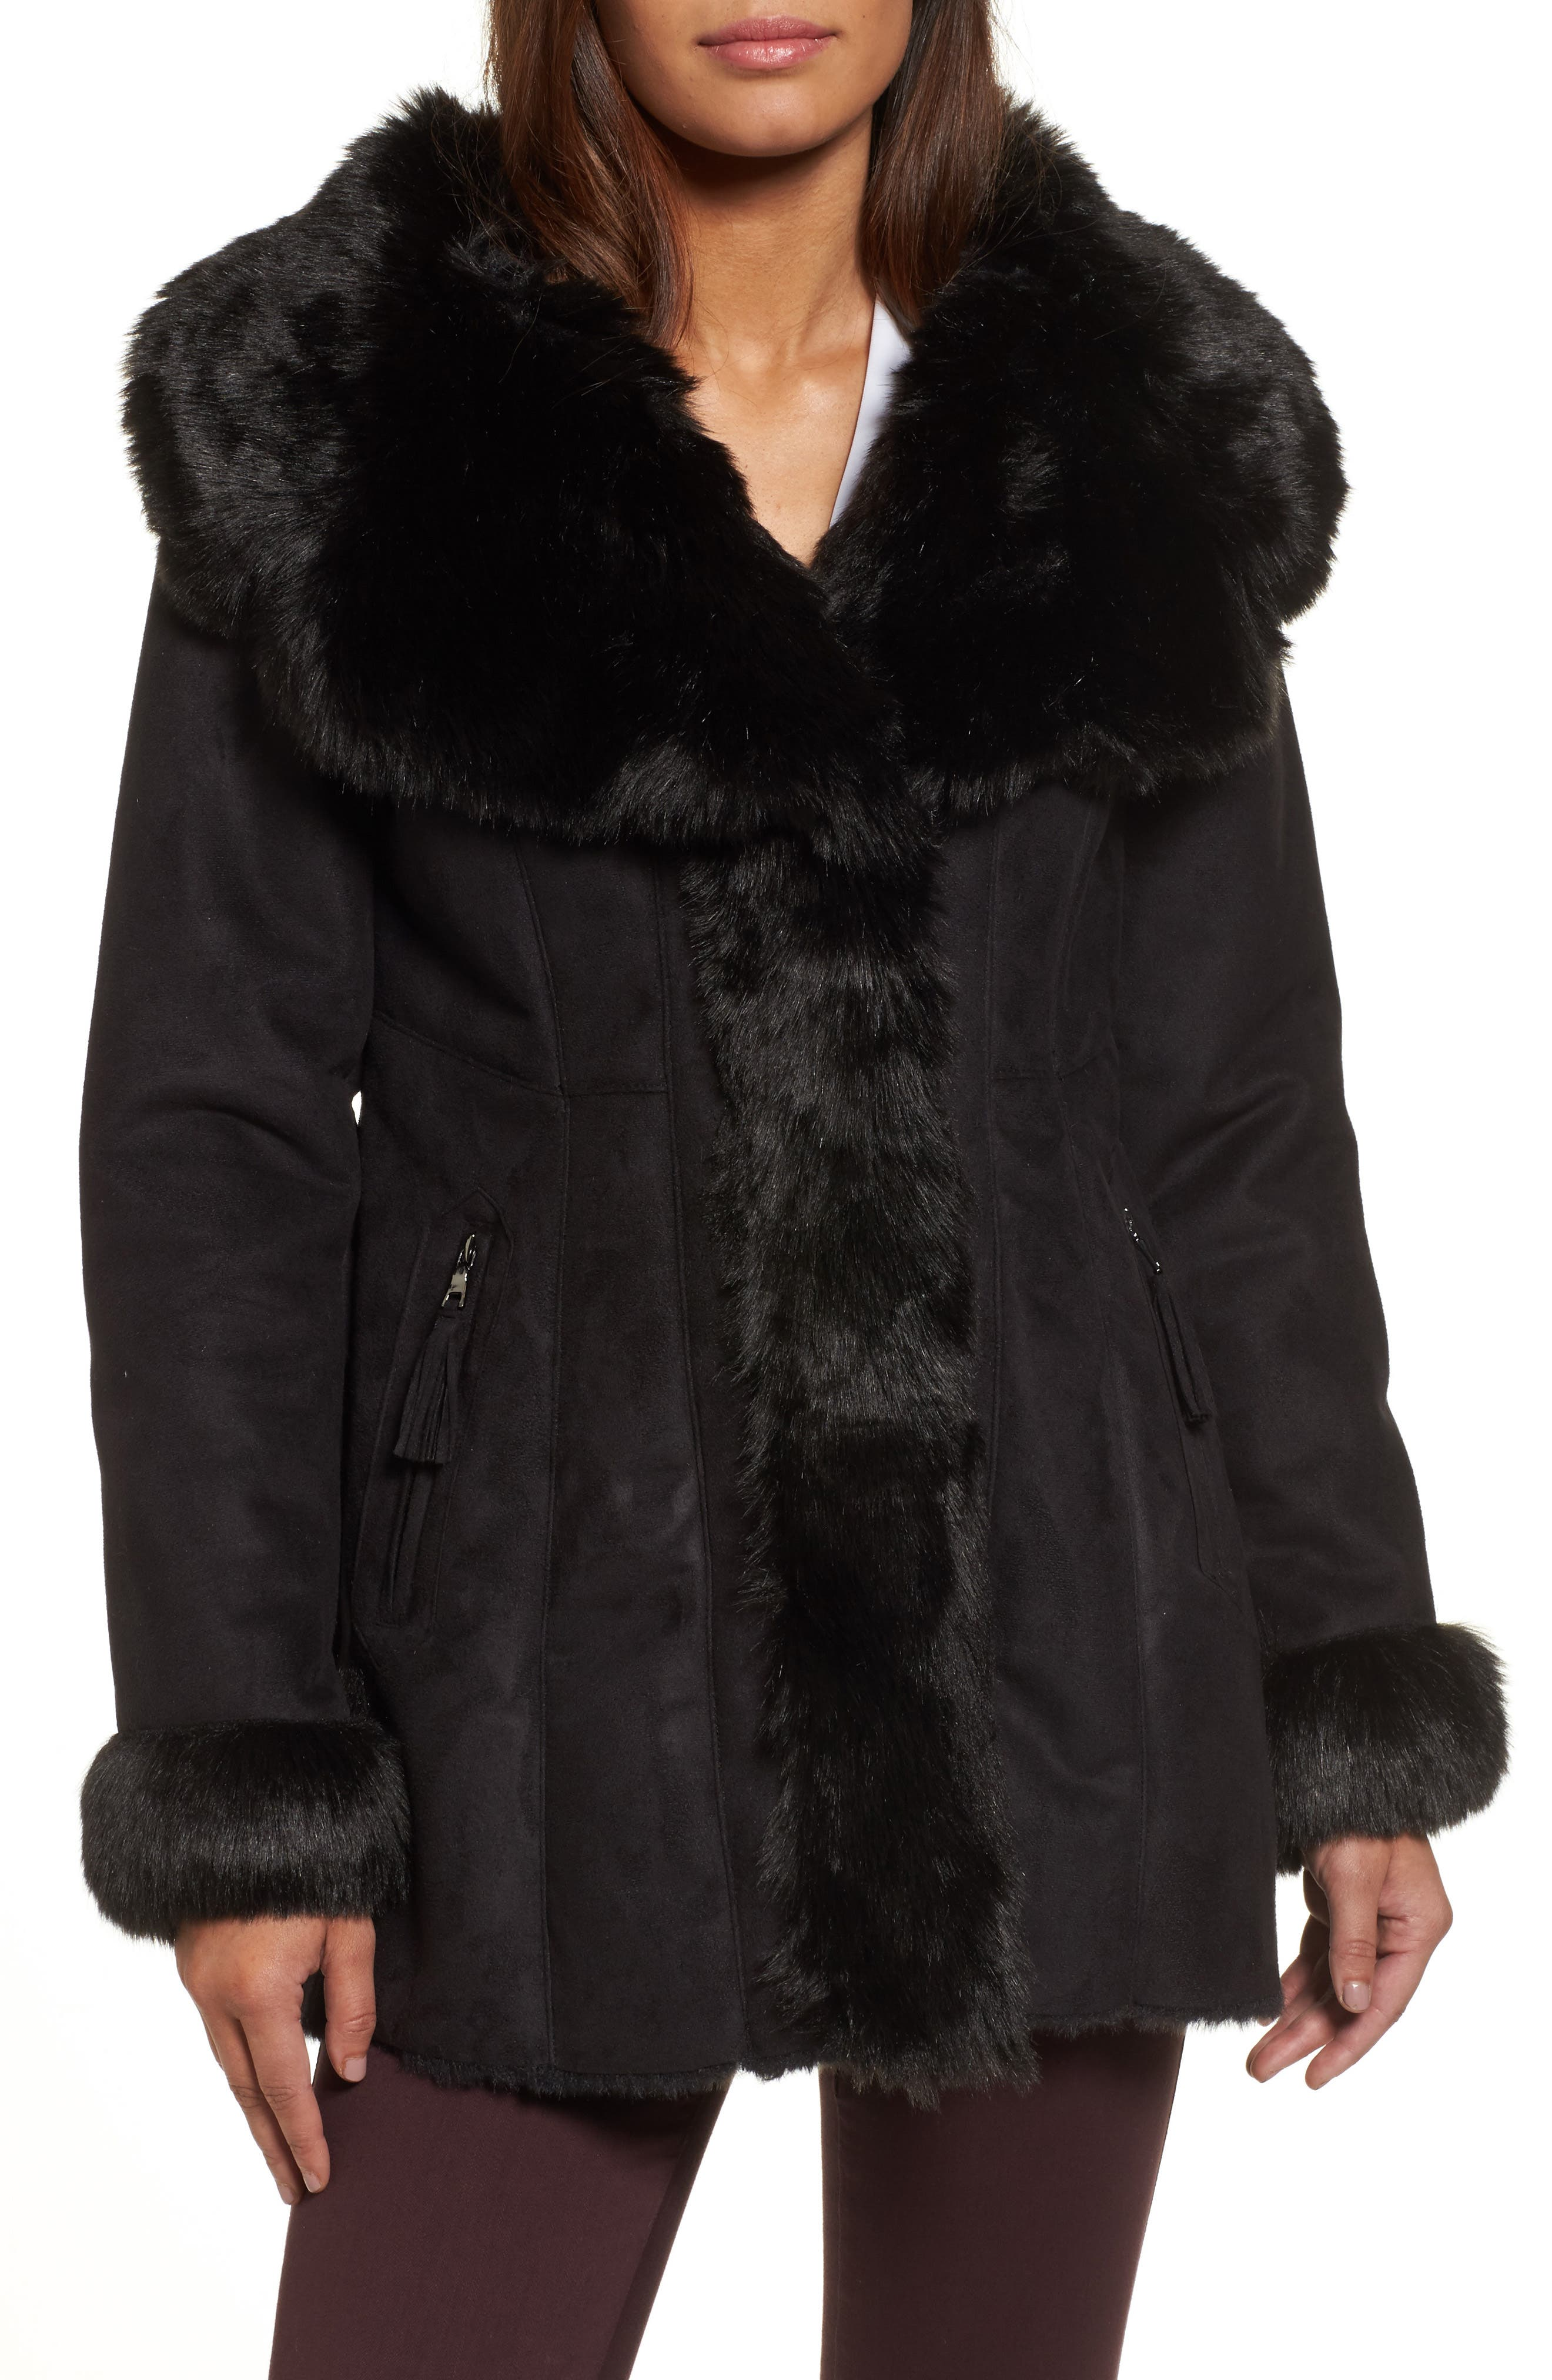 VIA SPIGA Faux Shearling Coat